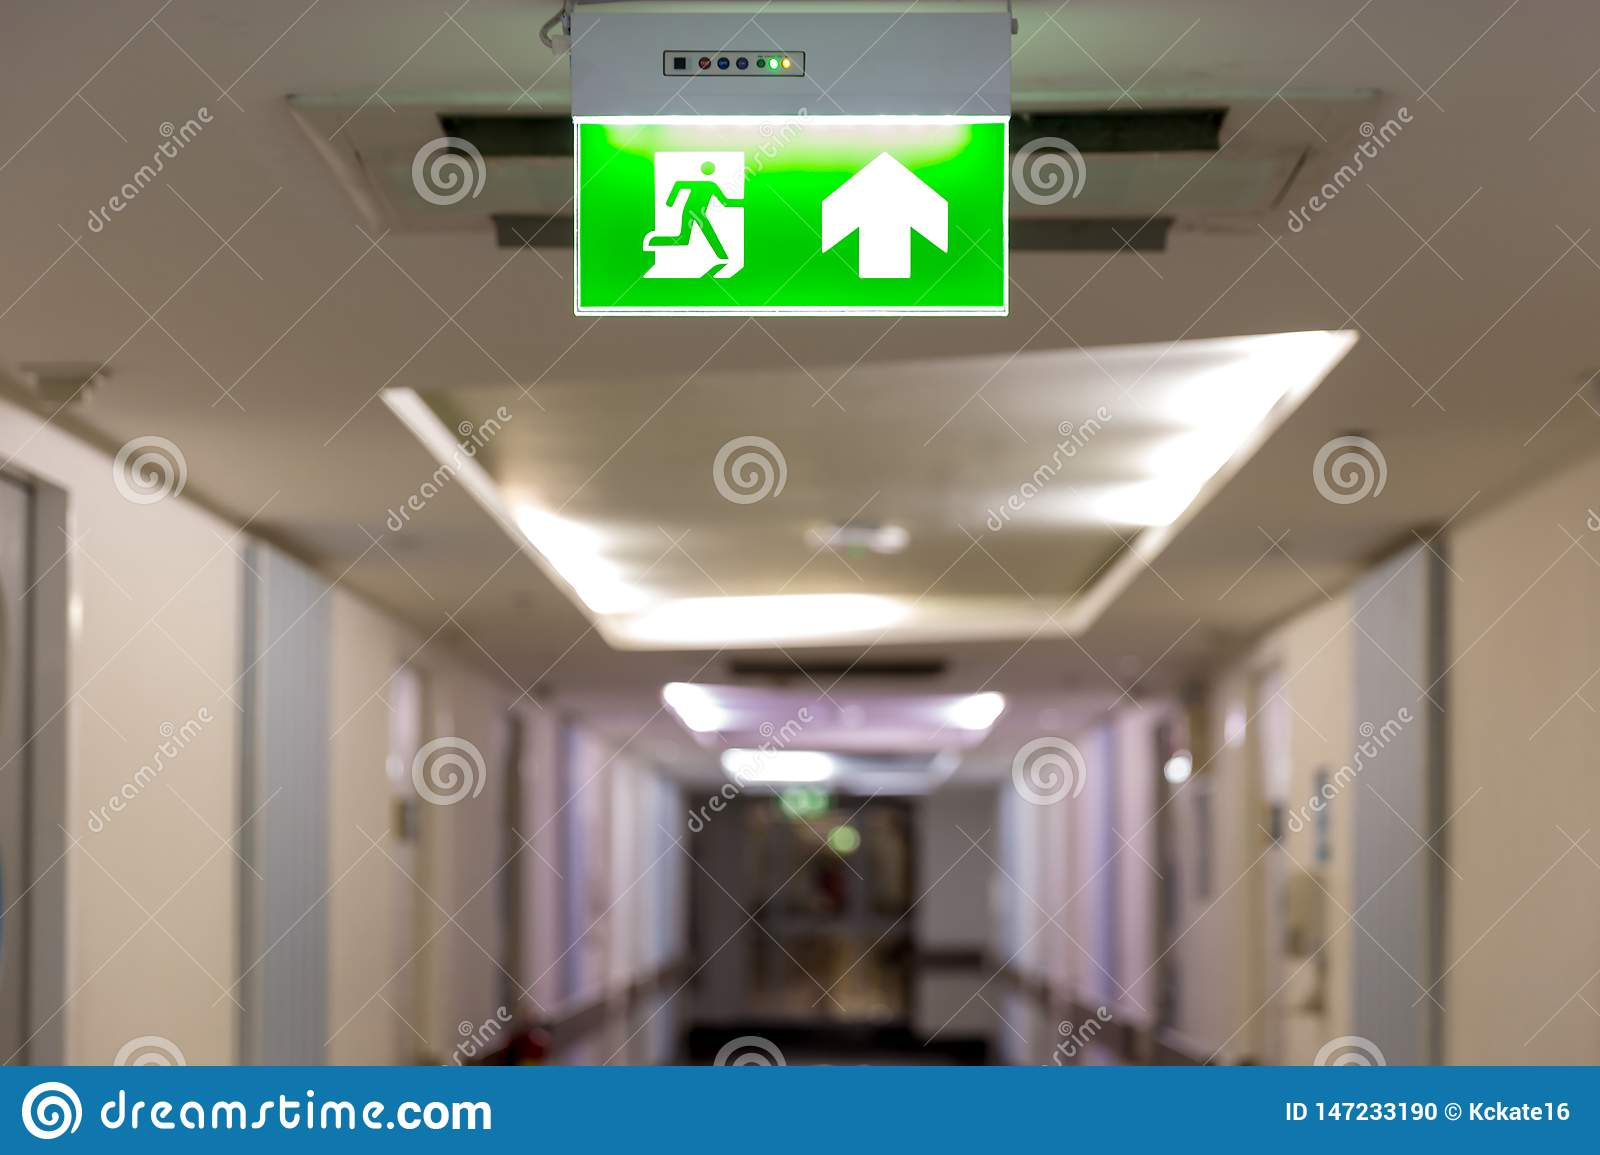 Green emergency exit sign showing the way to escape.Fire exit in the building